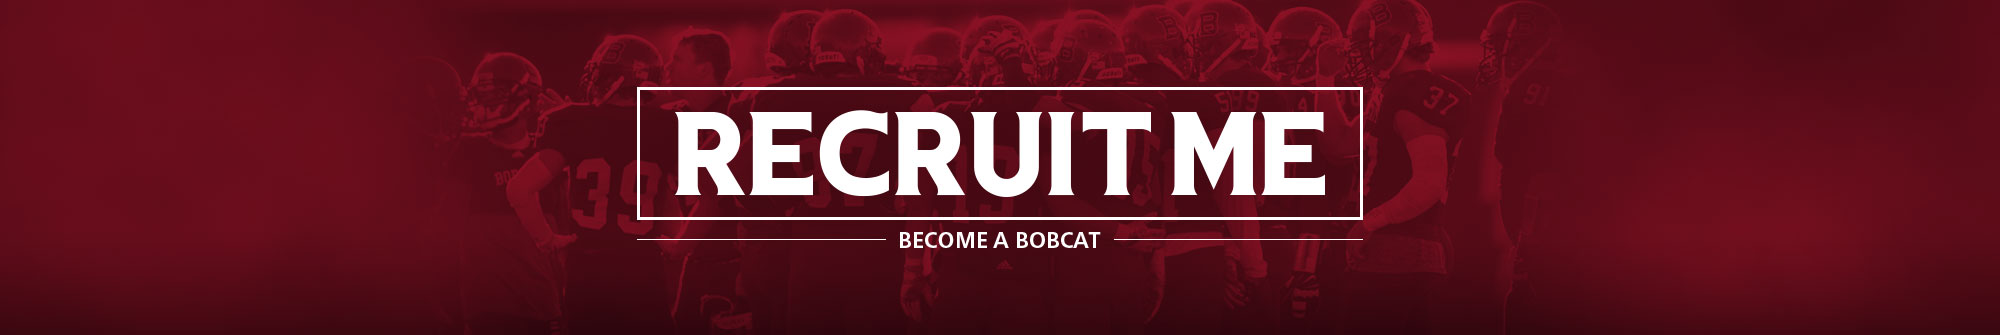 Recruit Me, Become a BOBCAT